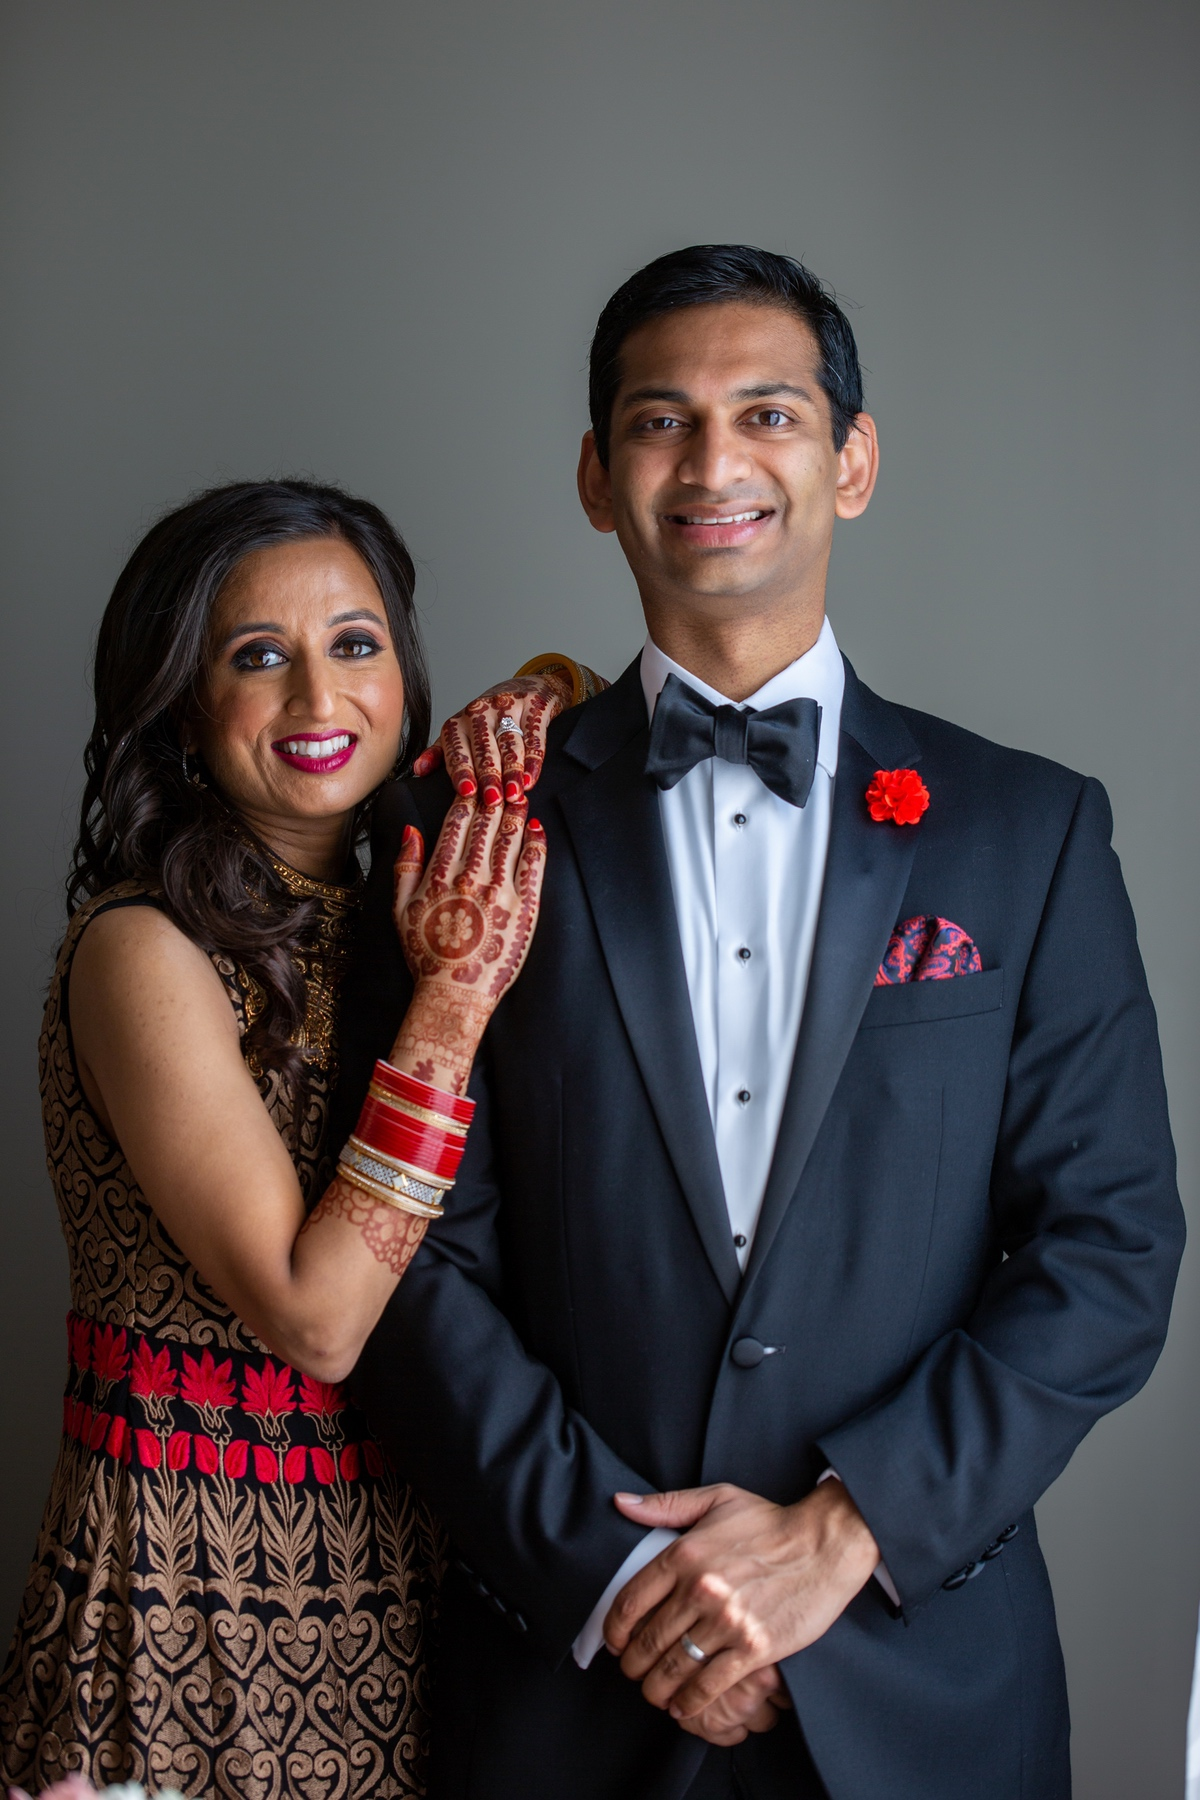 Le Cape Weddings - South Asian Wedding - Chicago Wedding Photographer P&V-88.jpg